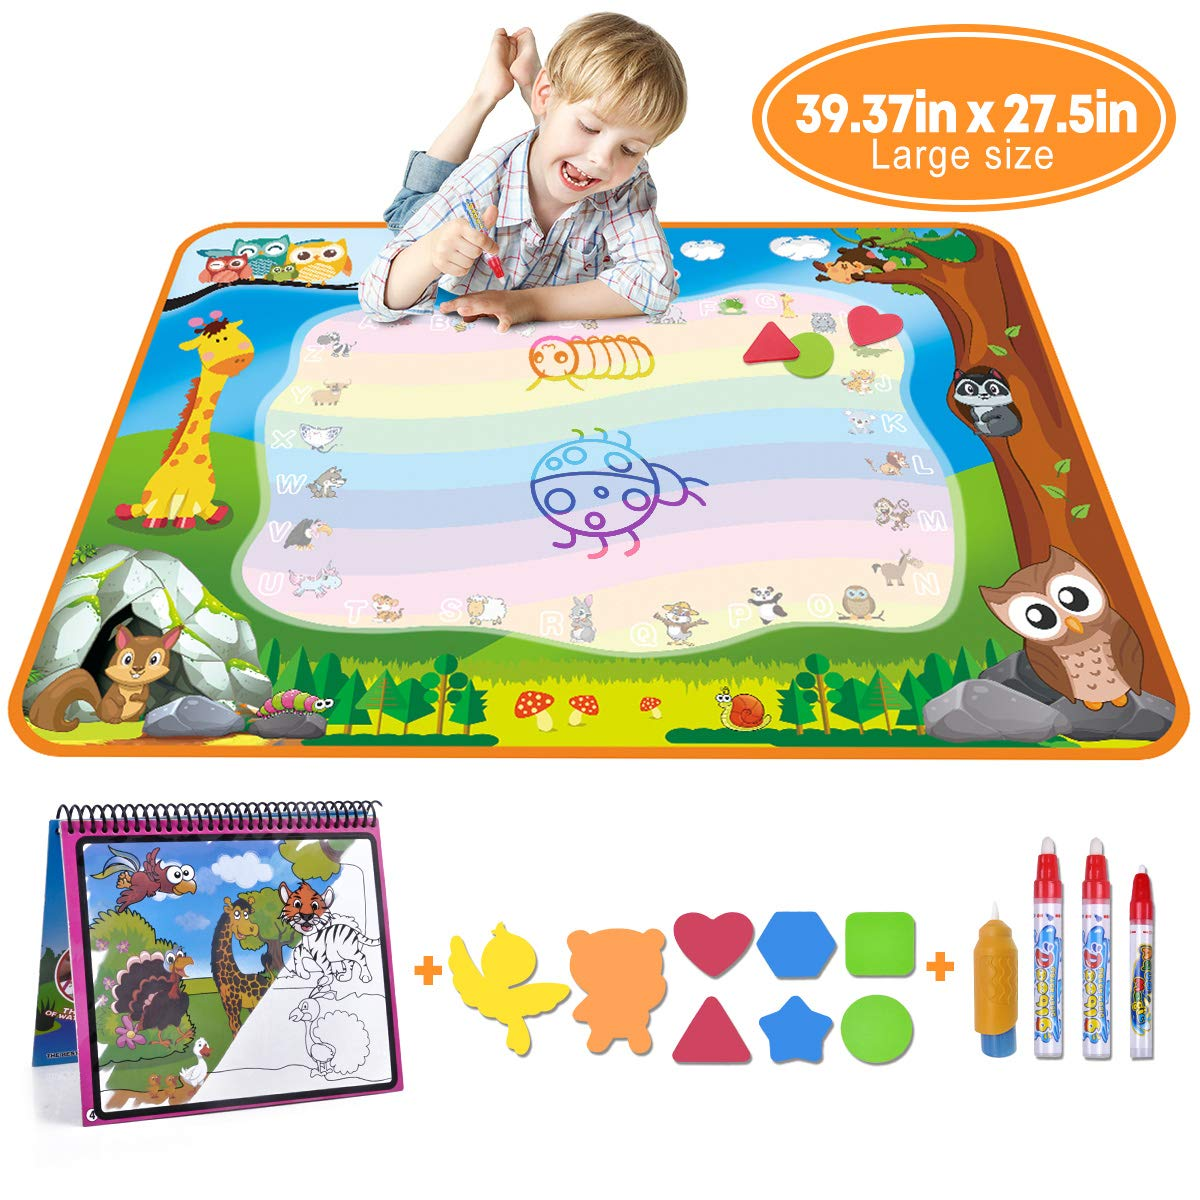 MerryXGift Water Doodle Mat, Large(39.4 x 27.5in) Rainbow Drawing Mat 7 Colors Writing Pad with Aqua Water Book, 4 Magic Pens & 8 Stamps – Best Learning Toy for Toddlers Age 2 3 4 5 6 7+ Years Old